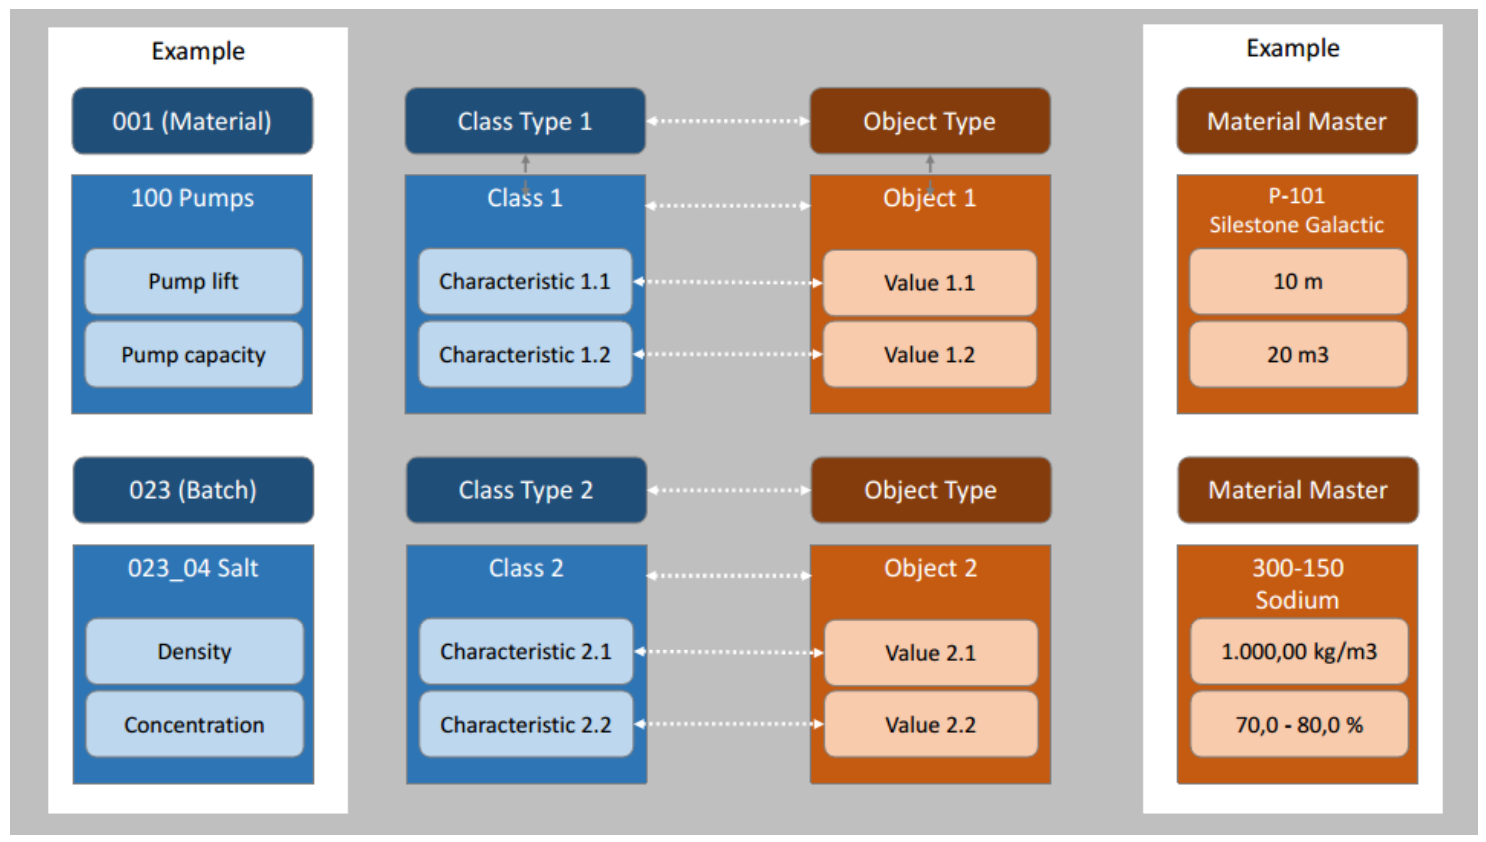 Figure 4. Structure of classification system with example of material master